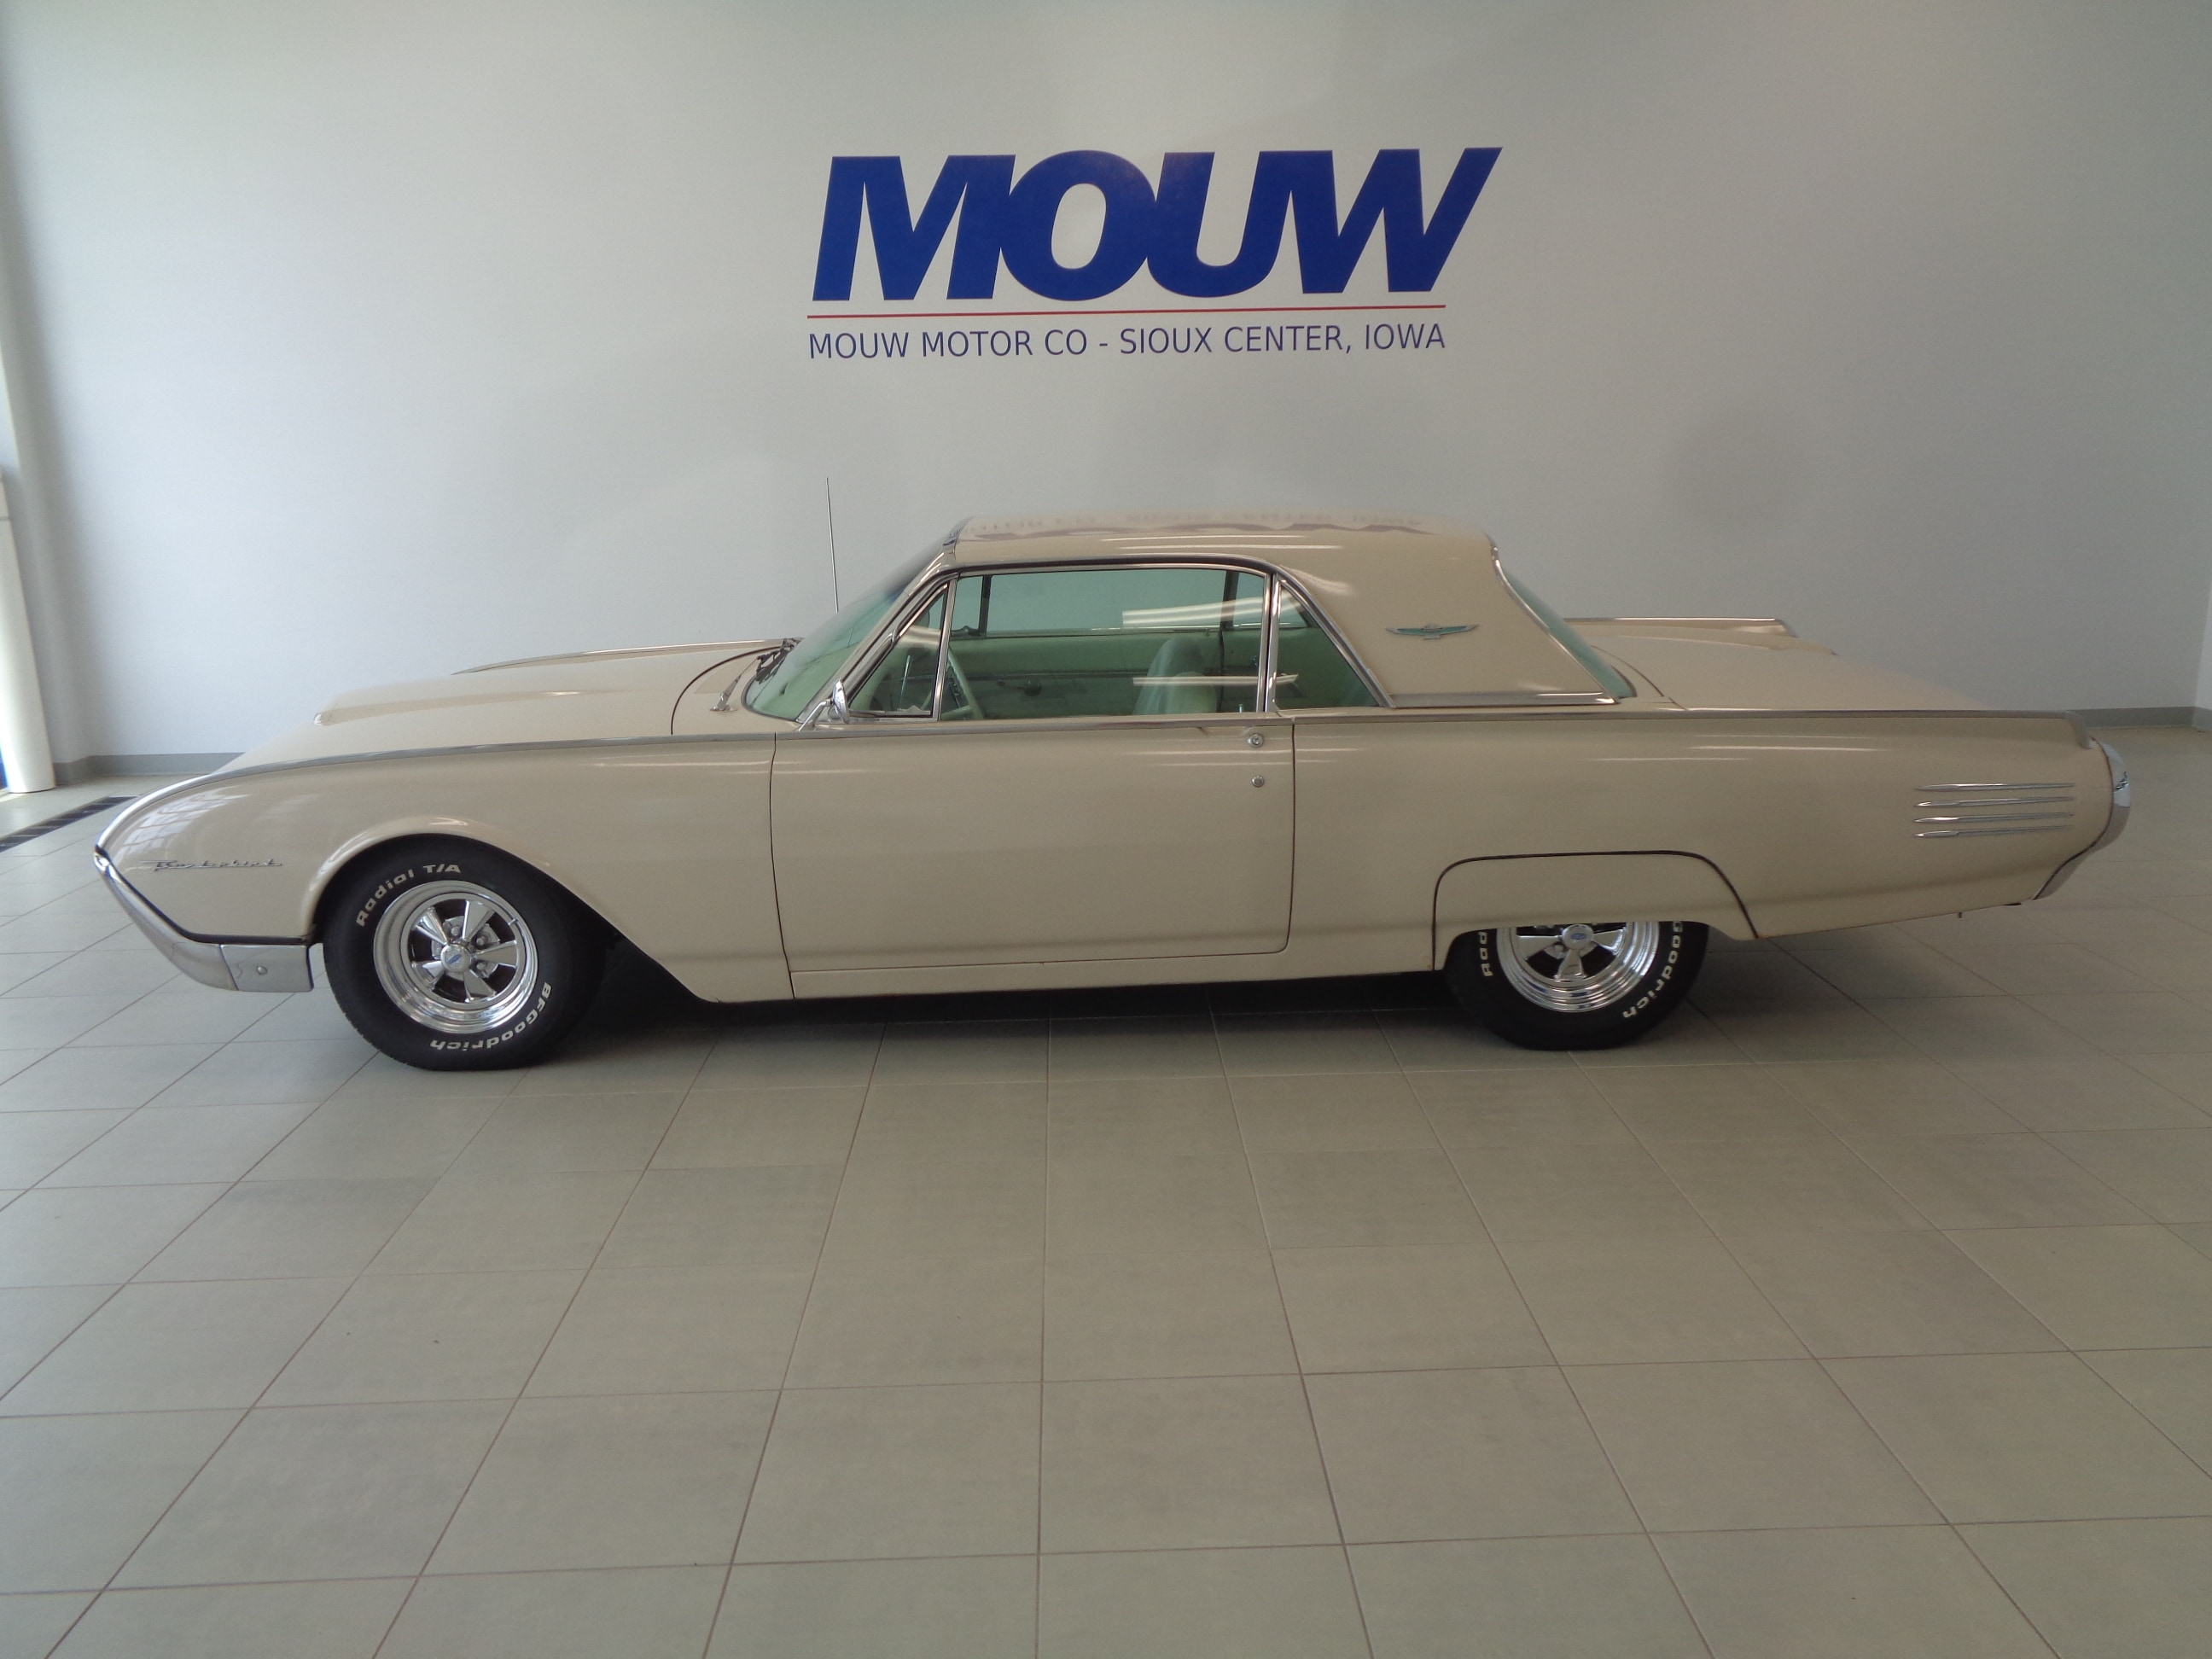 used 1961 ford thunderbird for sale at mouw motor company inc vin 1y71z153890 mouw motor company inc